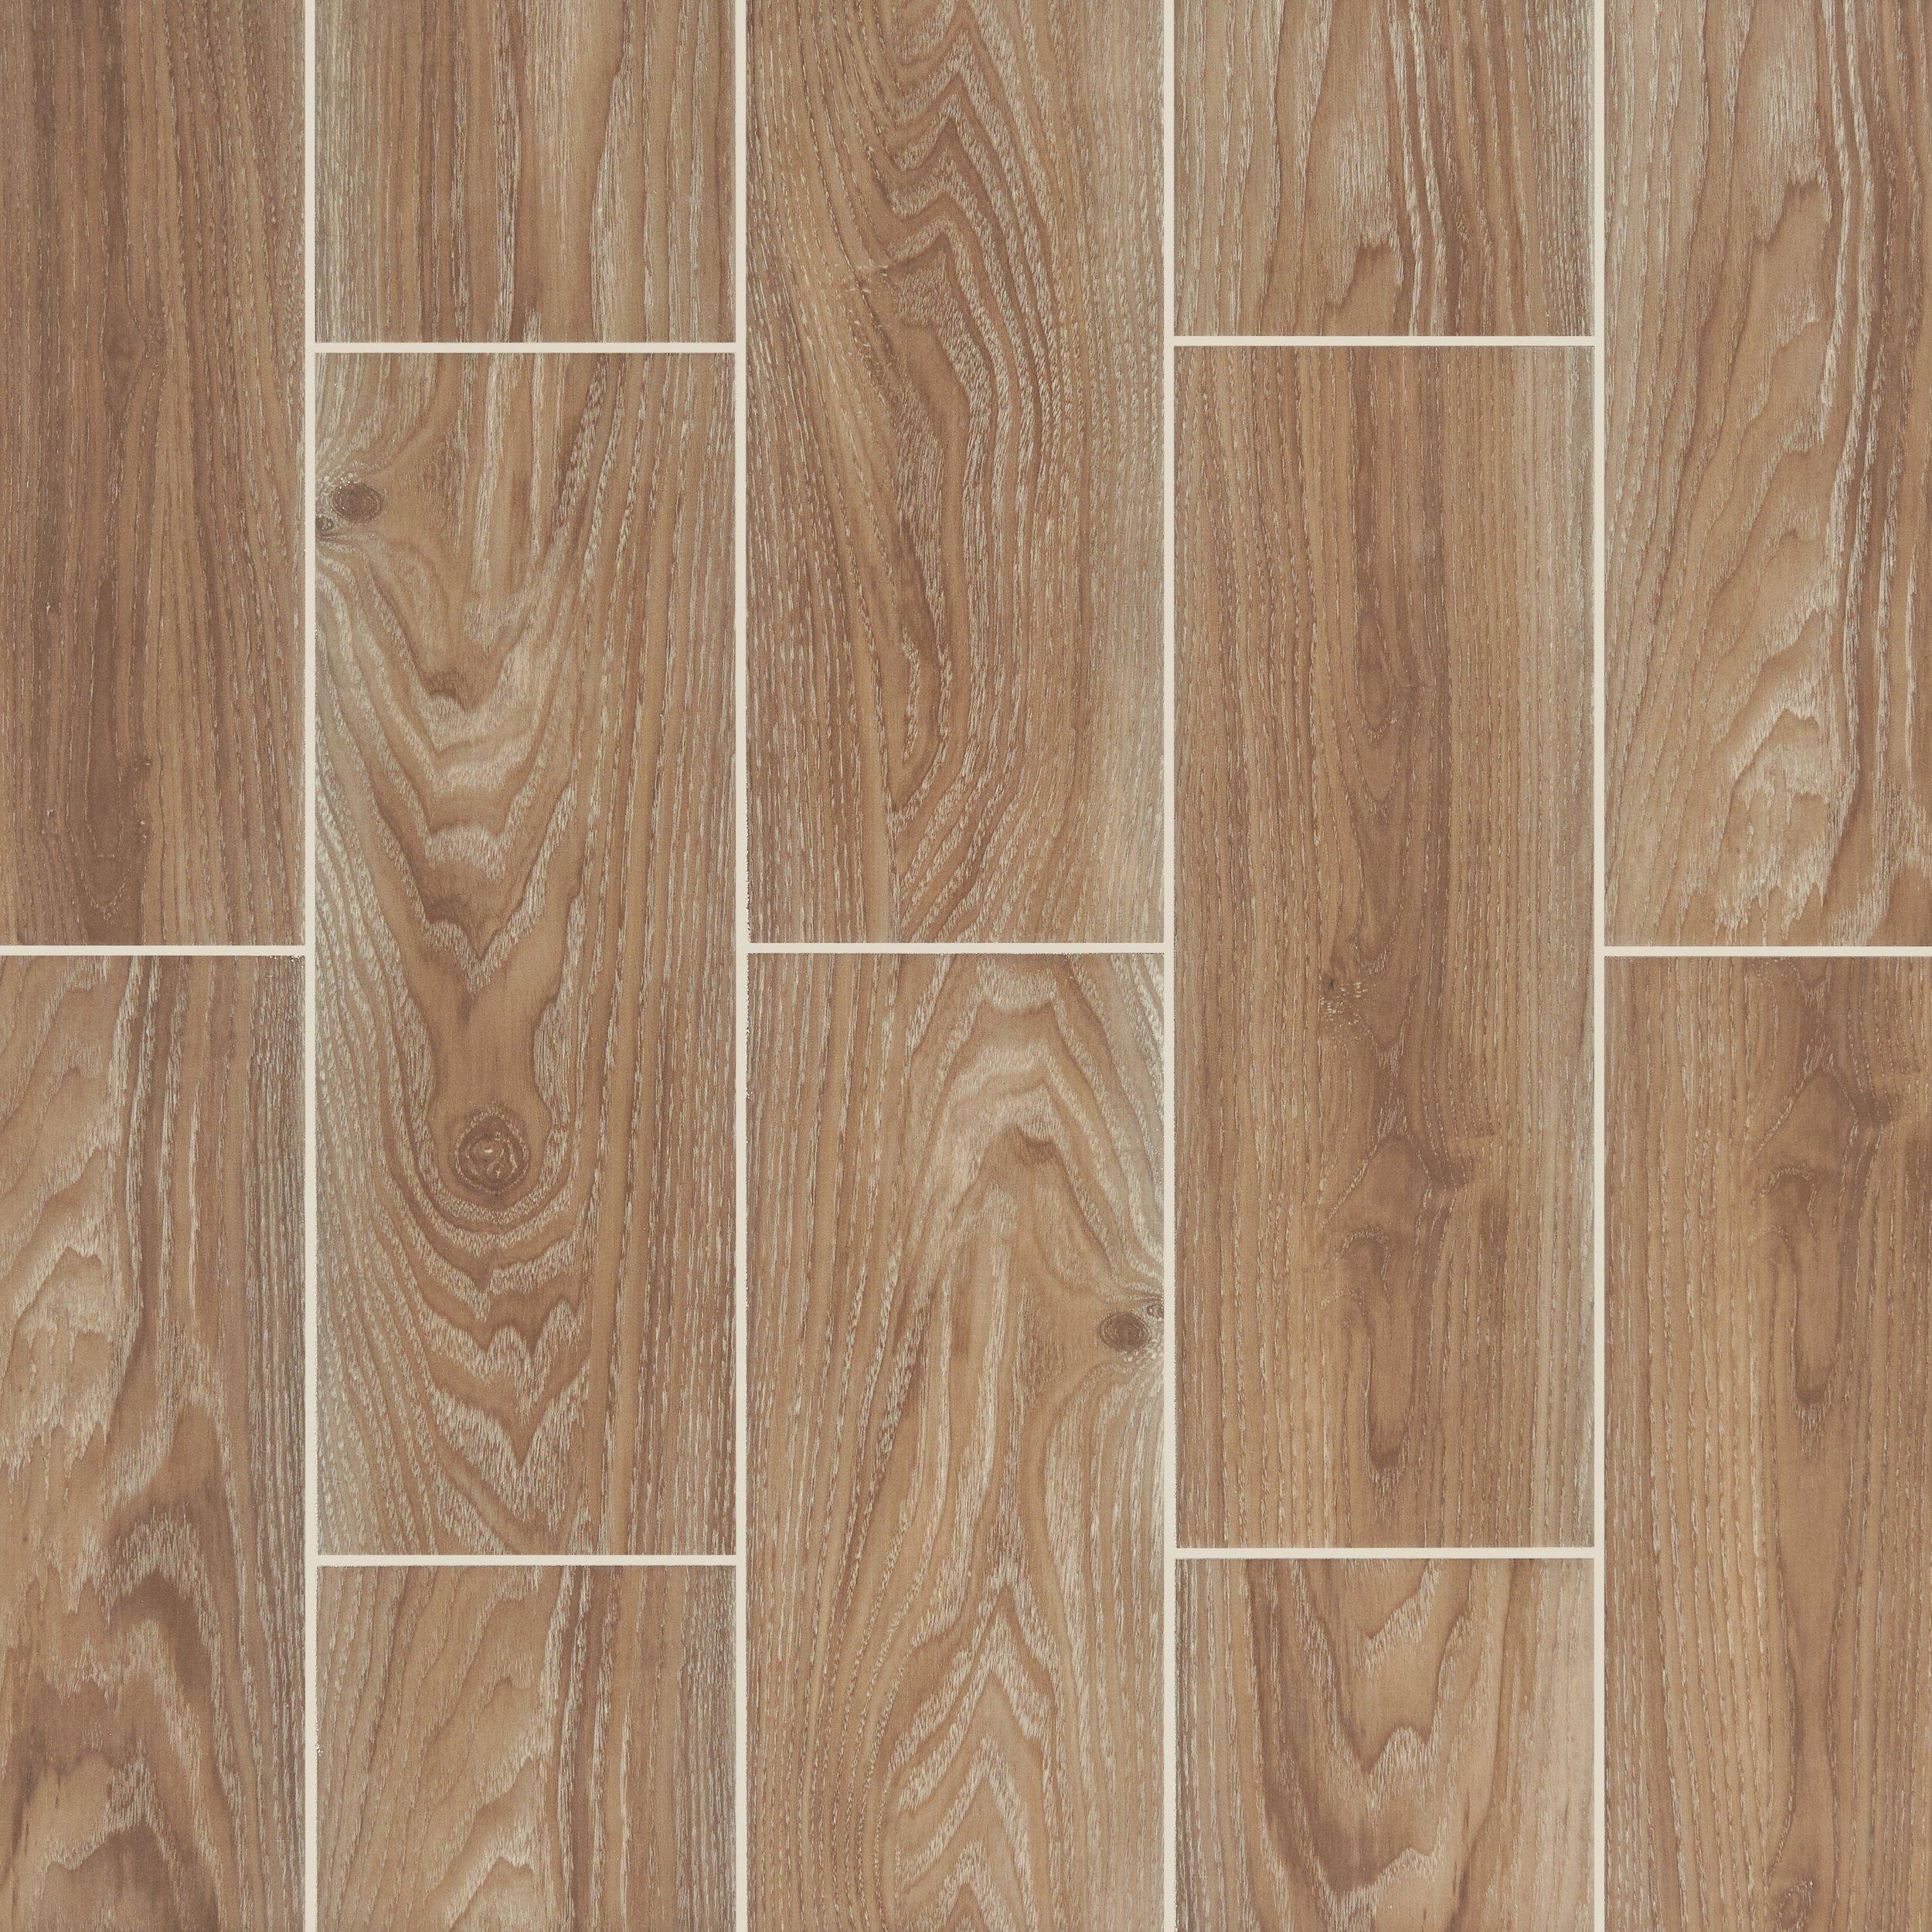 Wood like tile floors gurus floor for Ceramic flooring